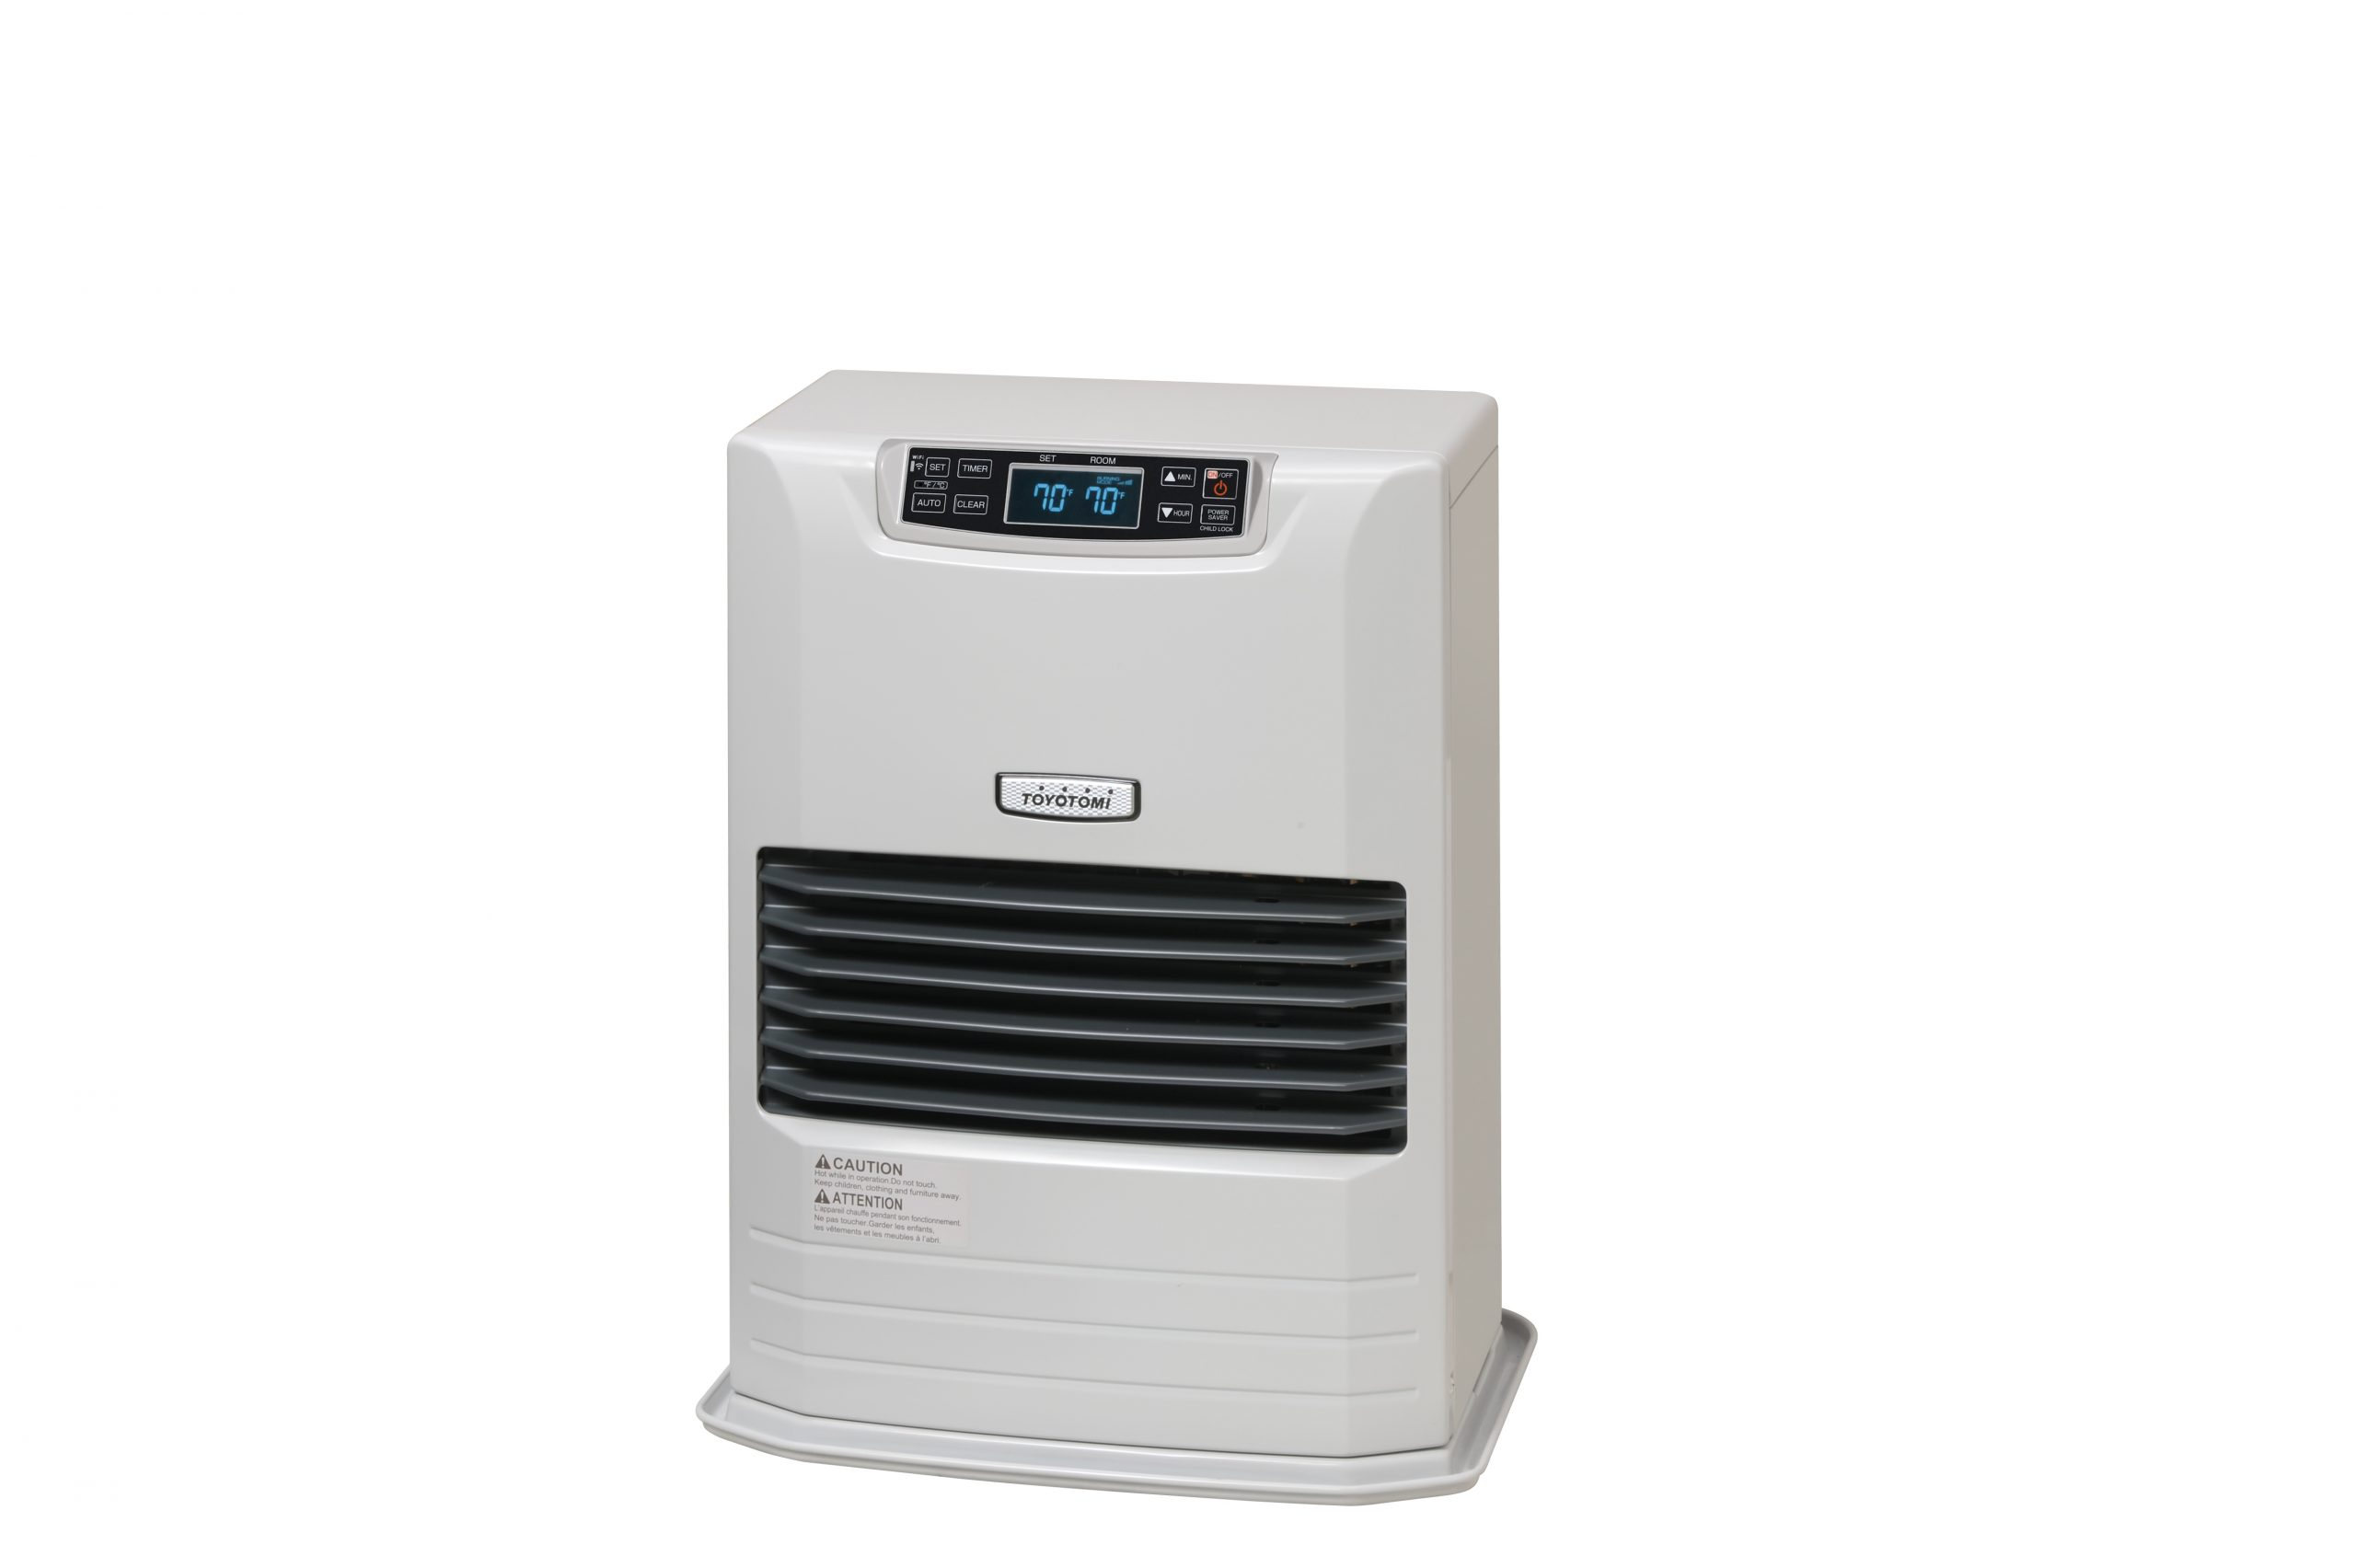 Toyotomi-300-laser-vented-heater-right